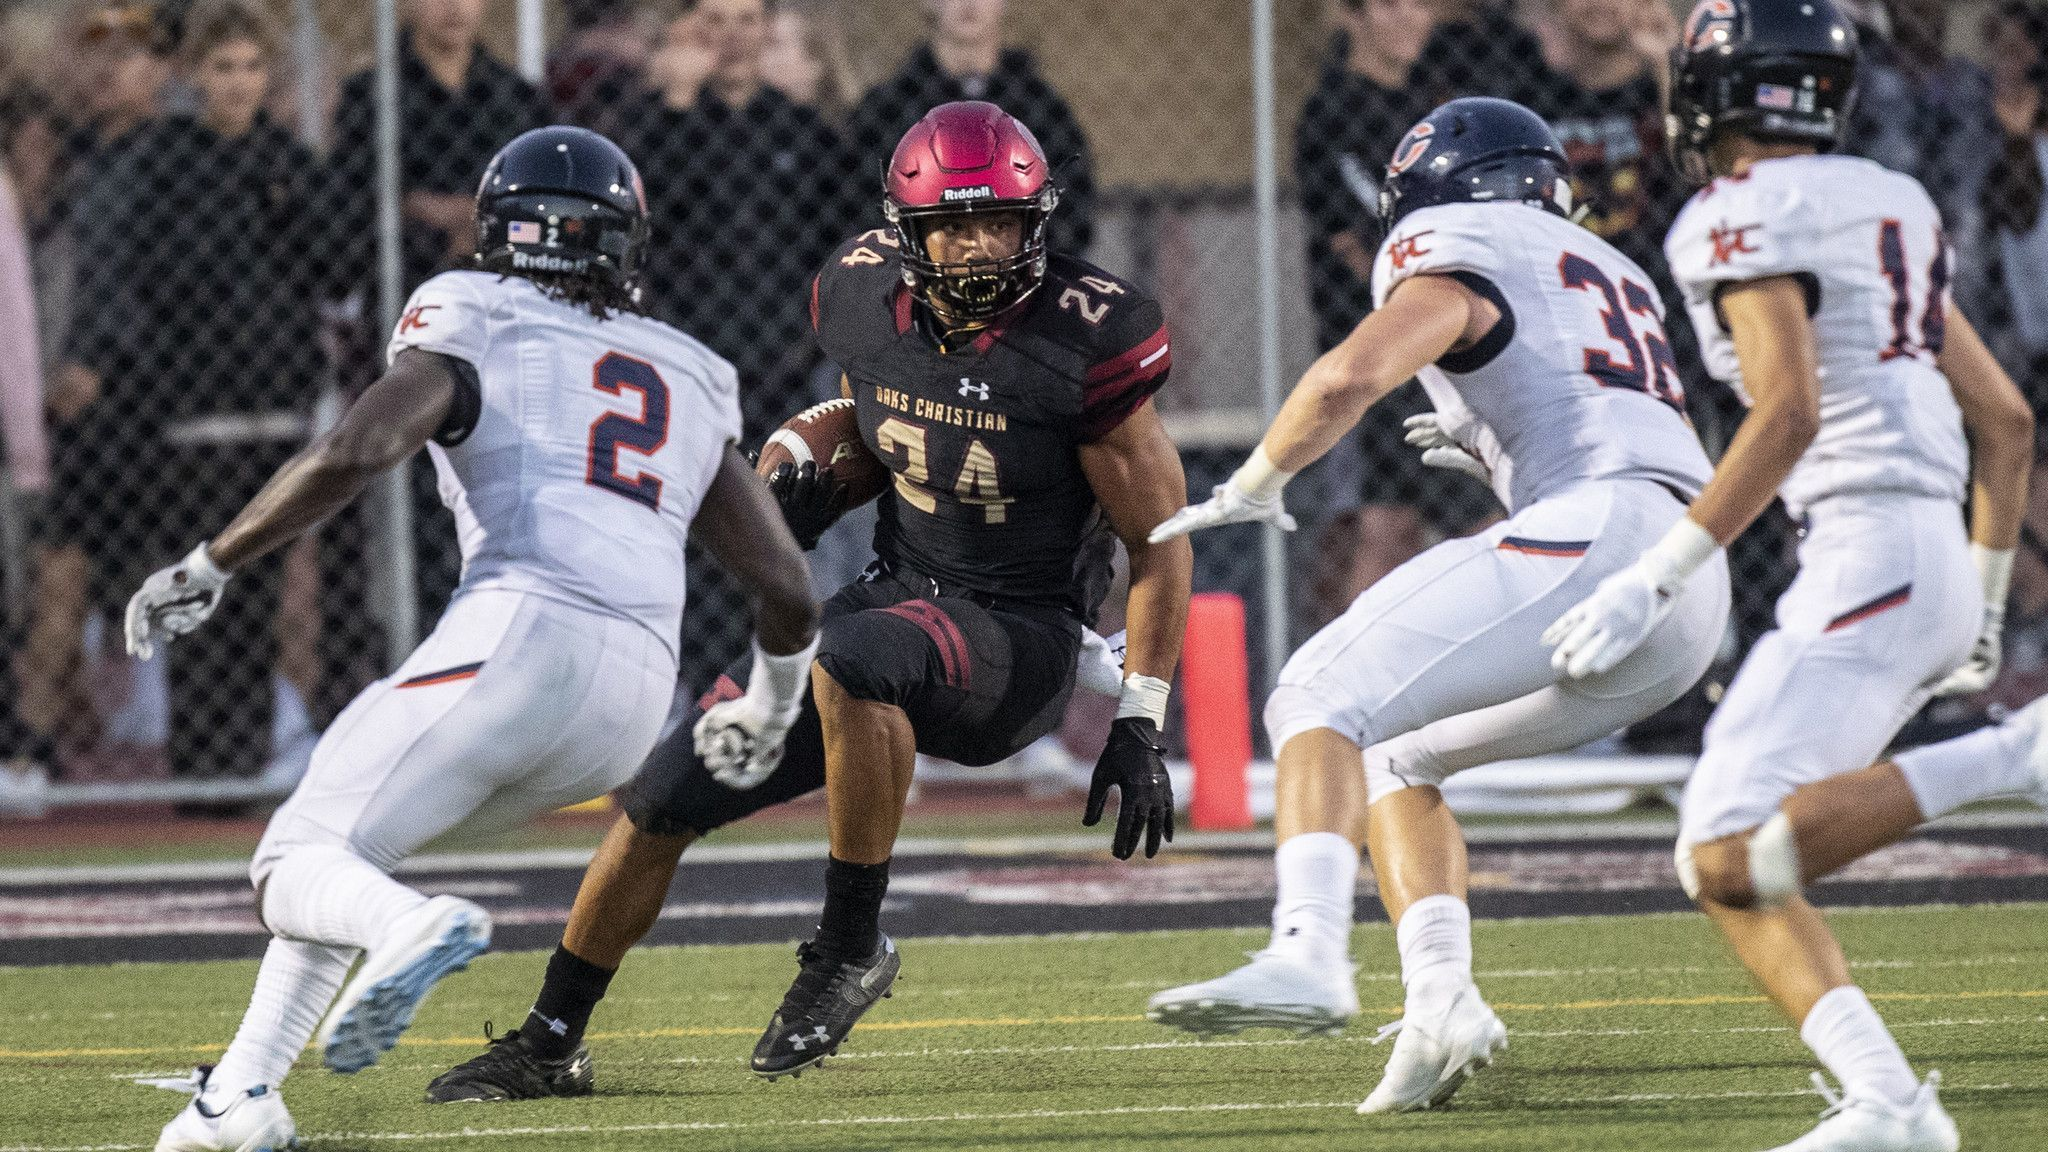 Oaks Christian's Zach Charbonnet runs all over Chaminade in 31-13 victory